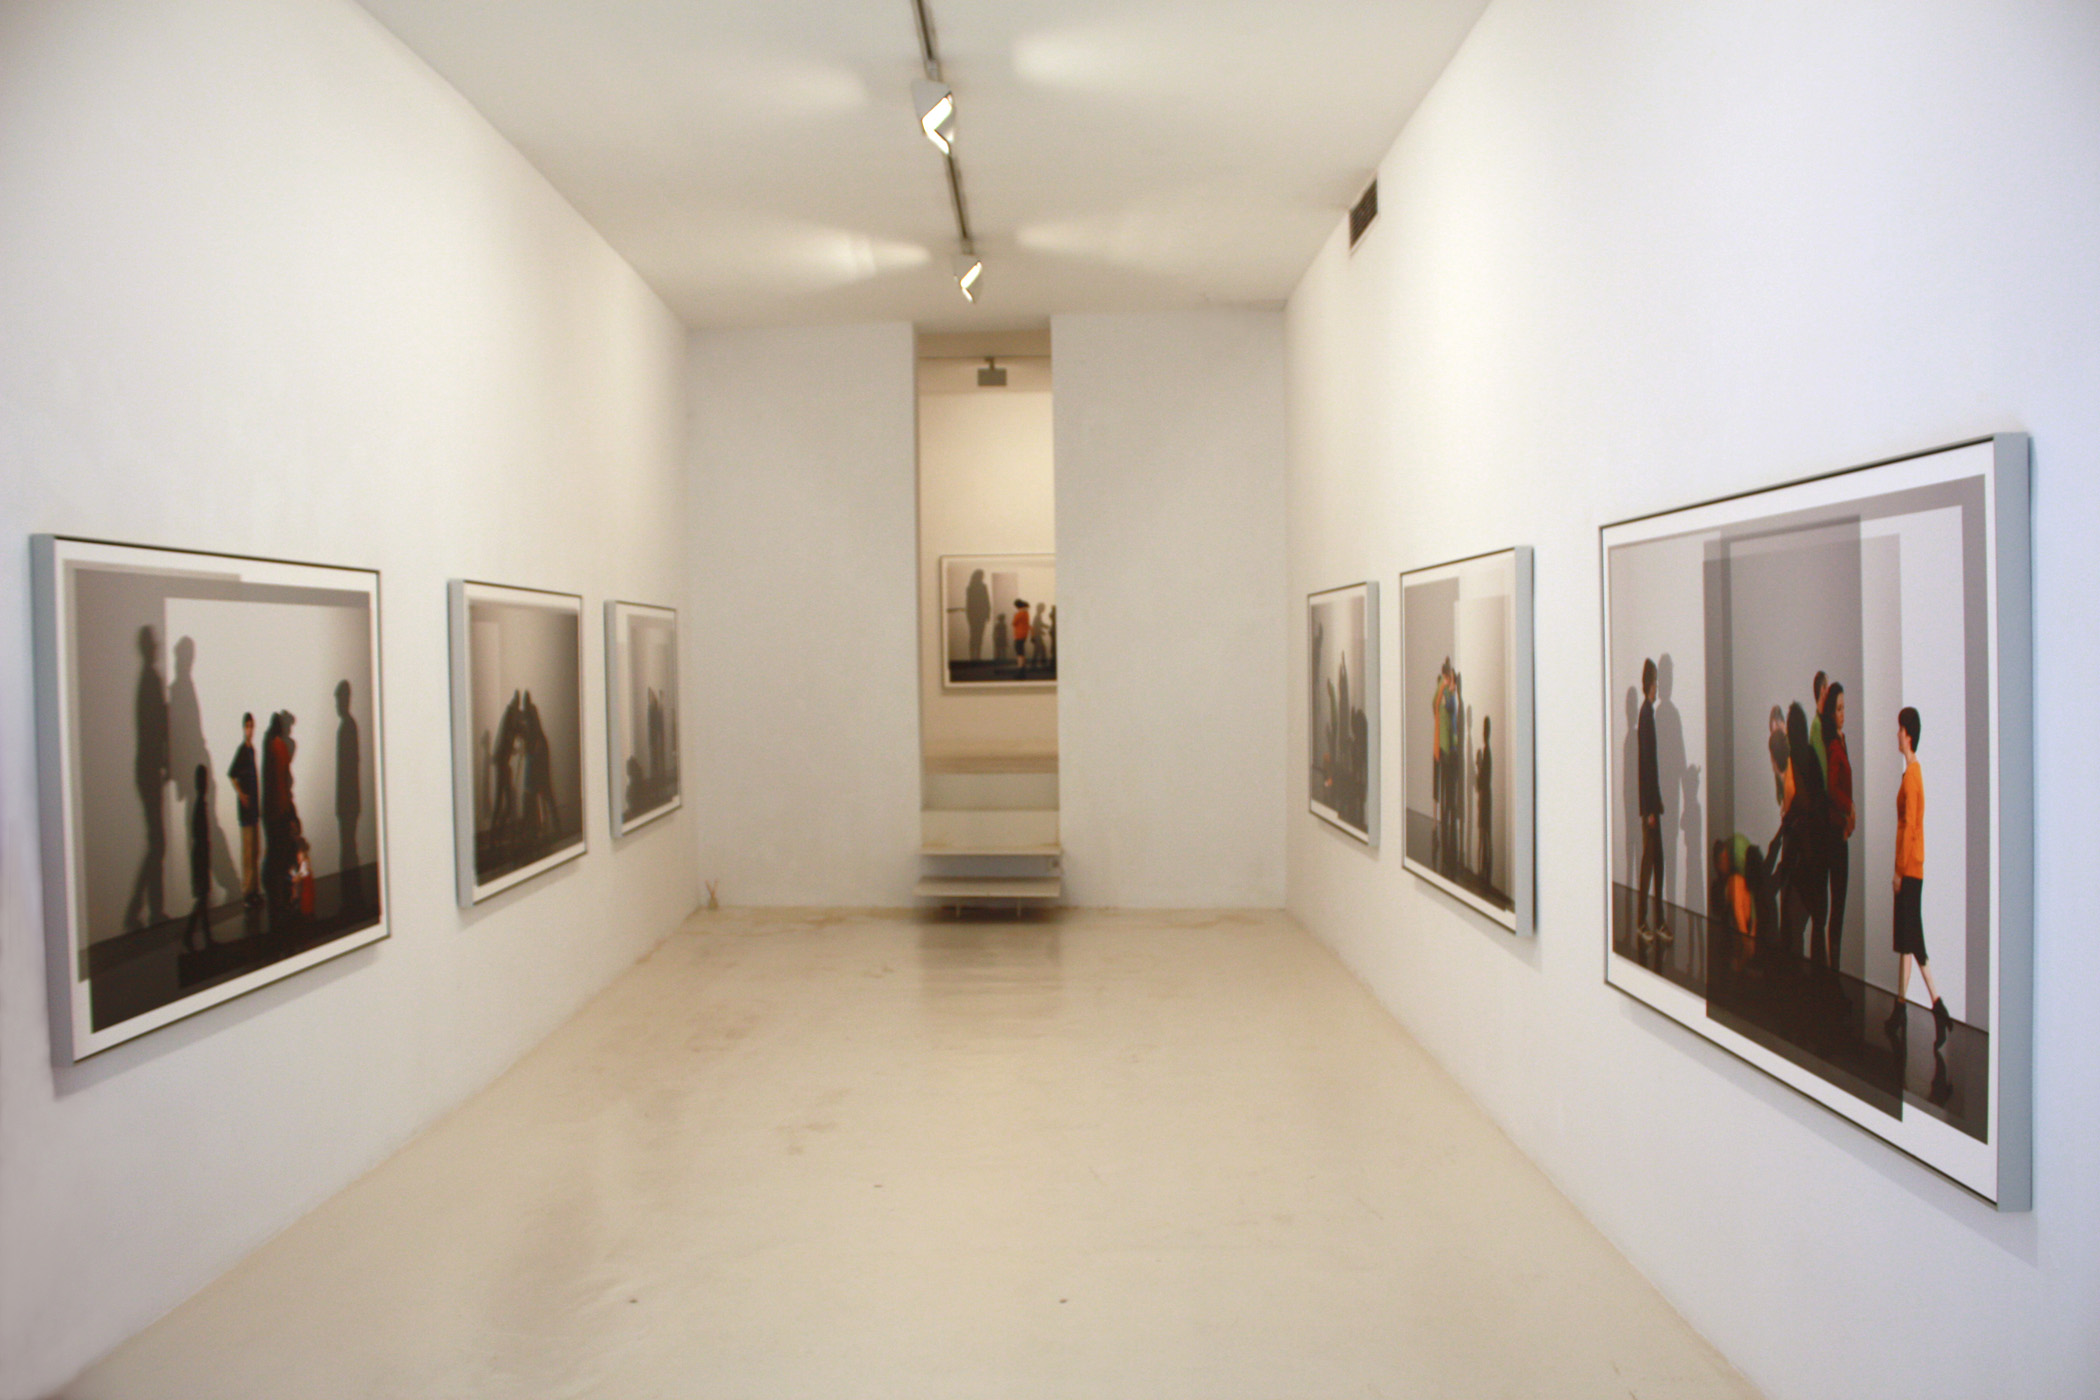 Exhibition view from Eulalia Valldosera, 2011